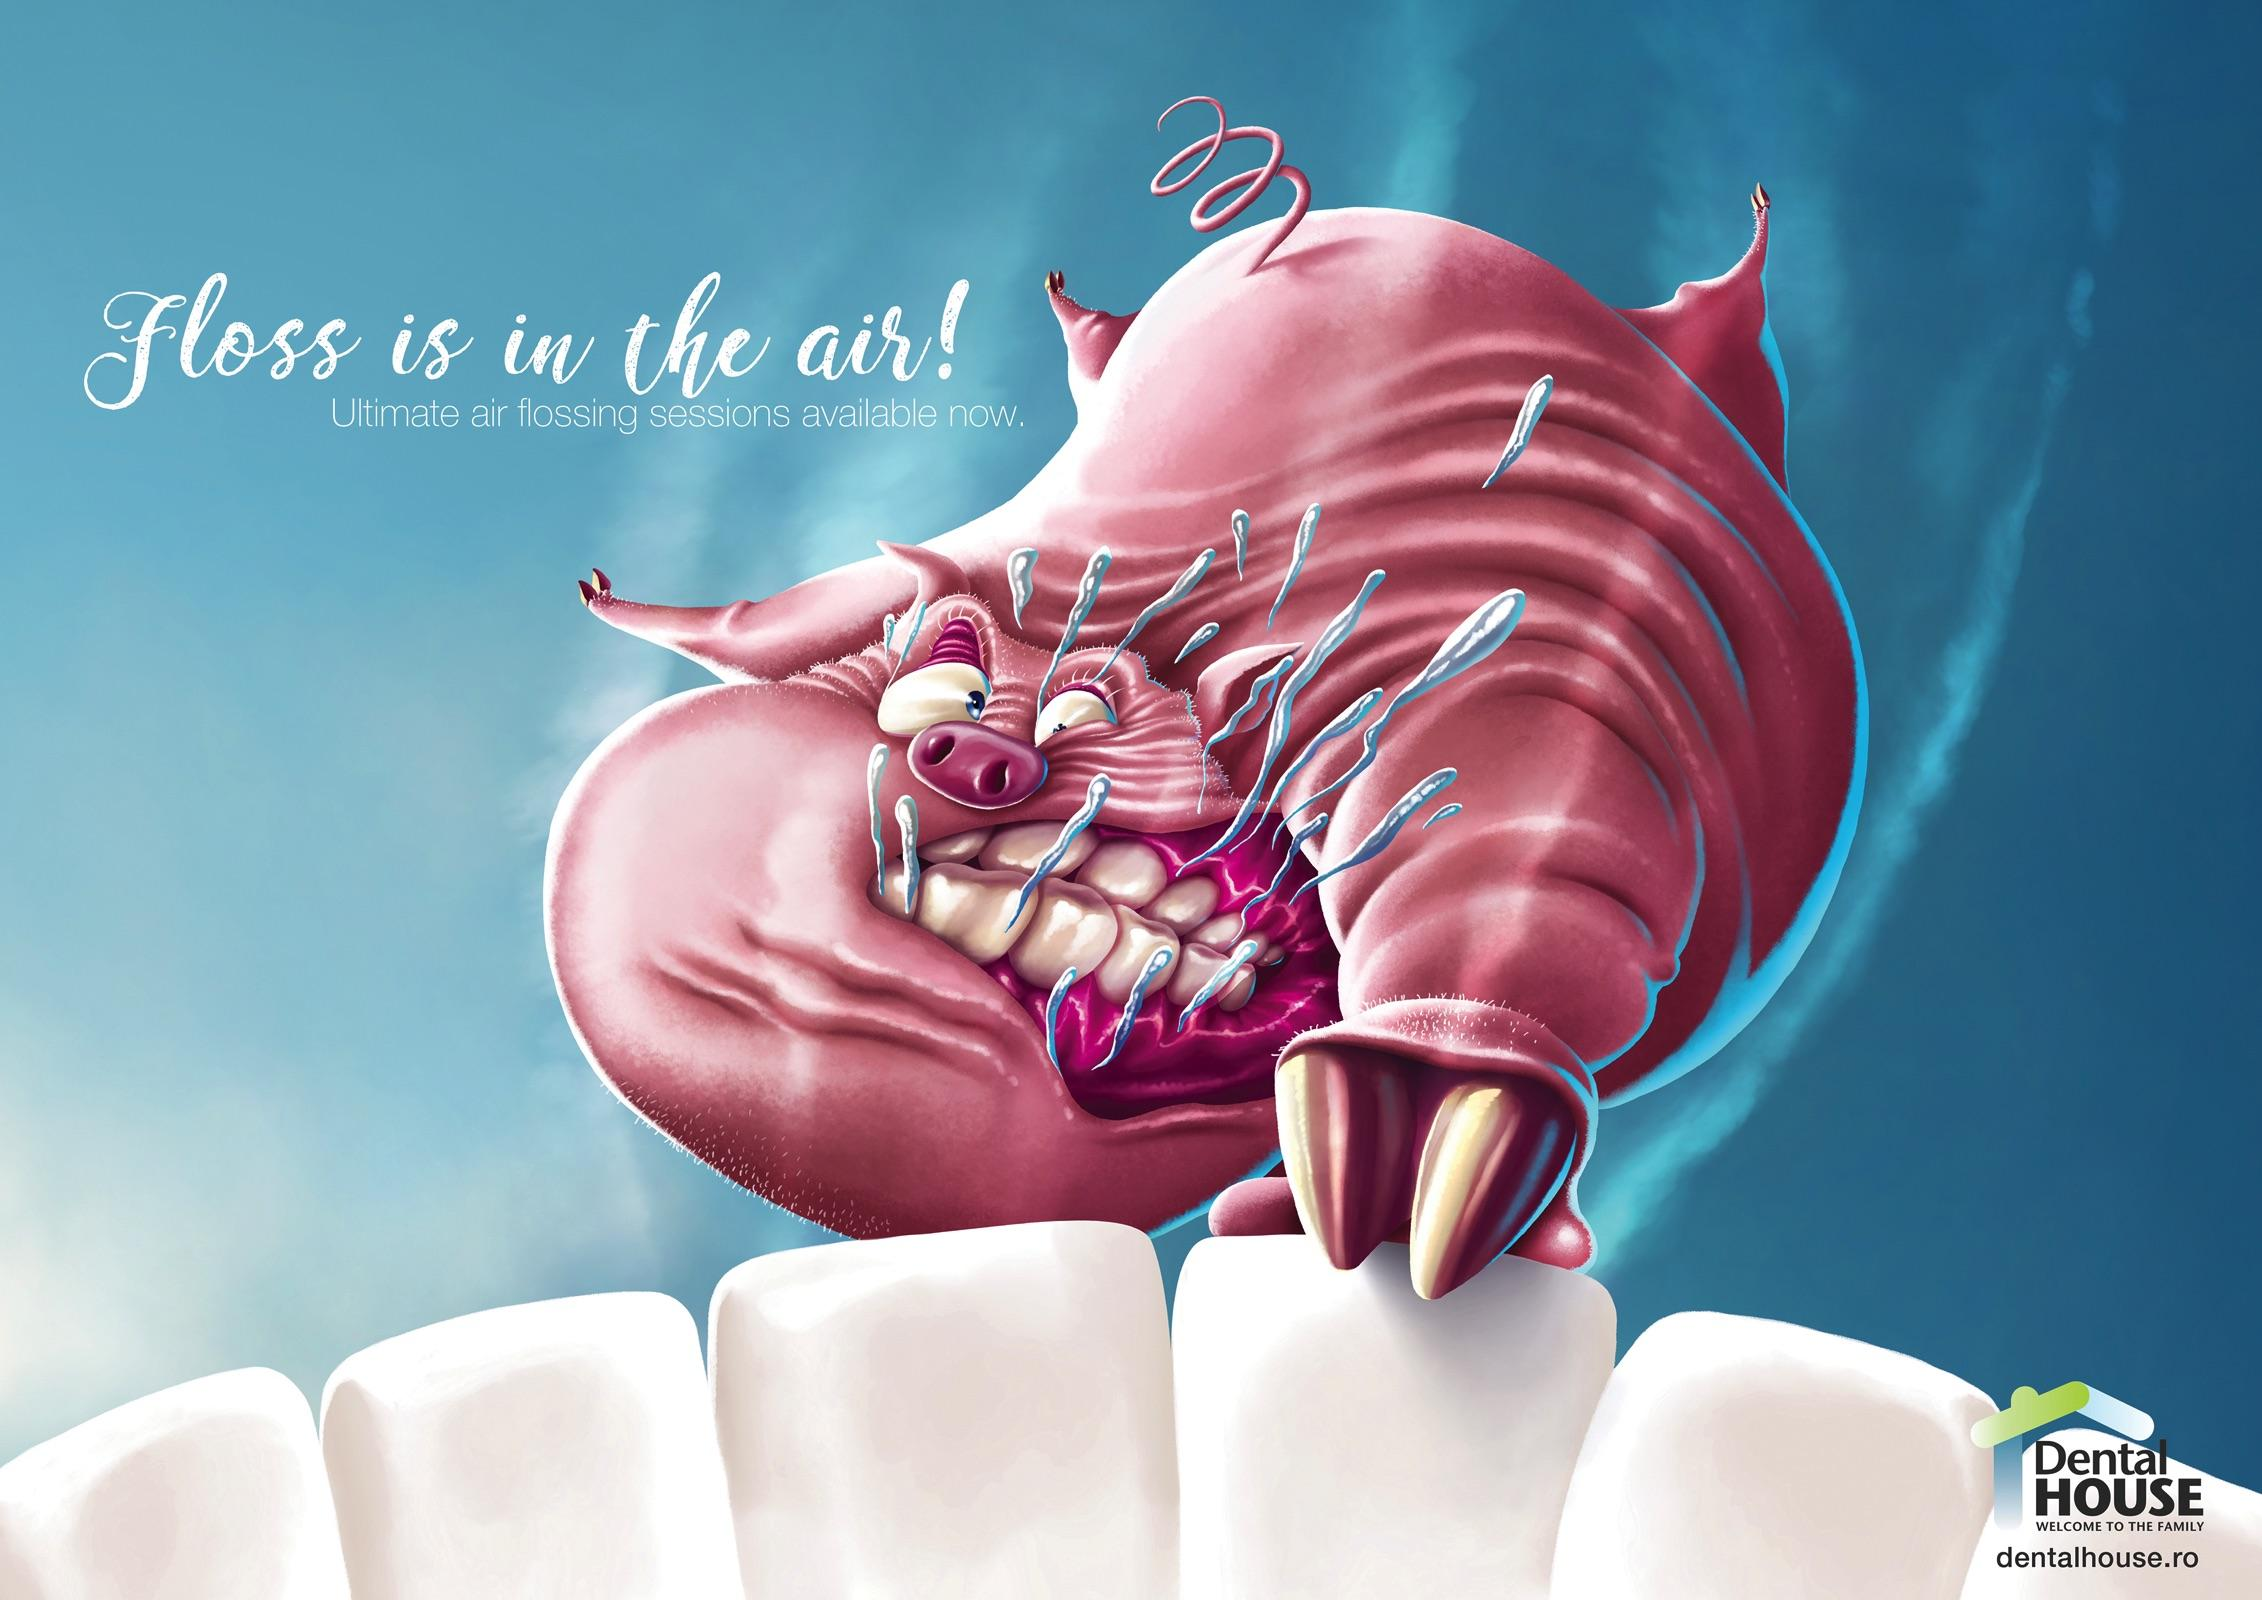 Dental House Print Ad - Floss Is In the Air - Pig